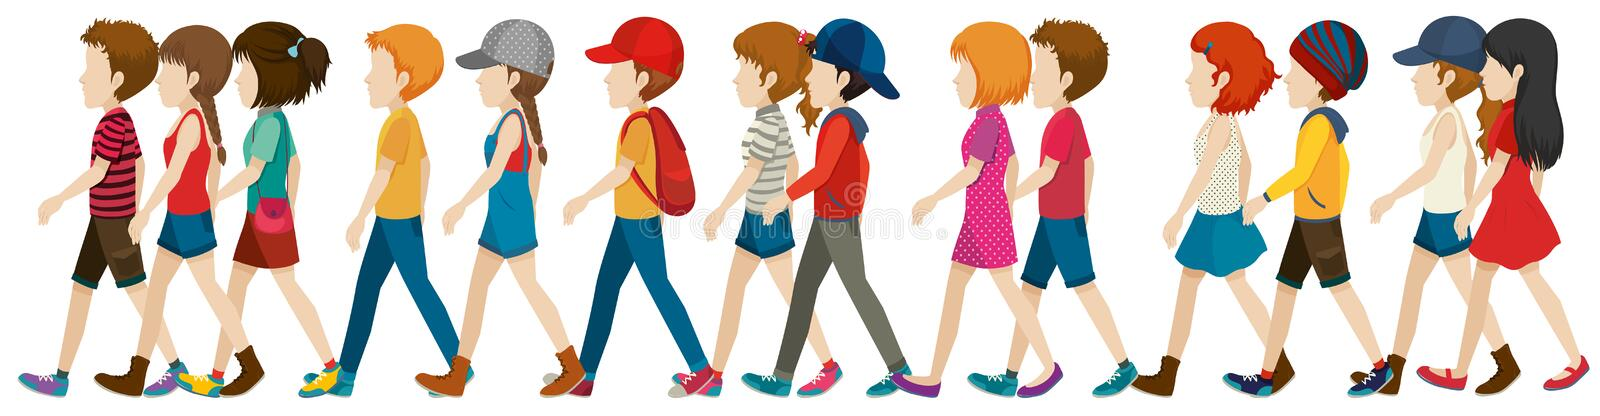 A crowd walking. On a white background vector illustration